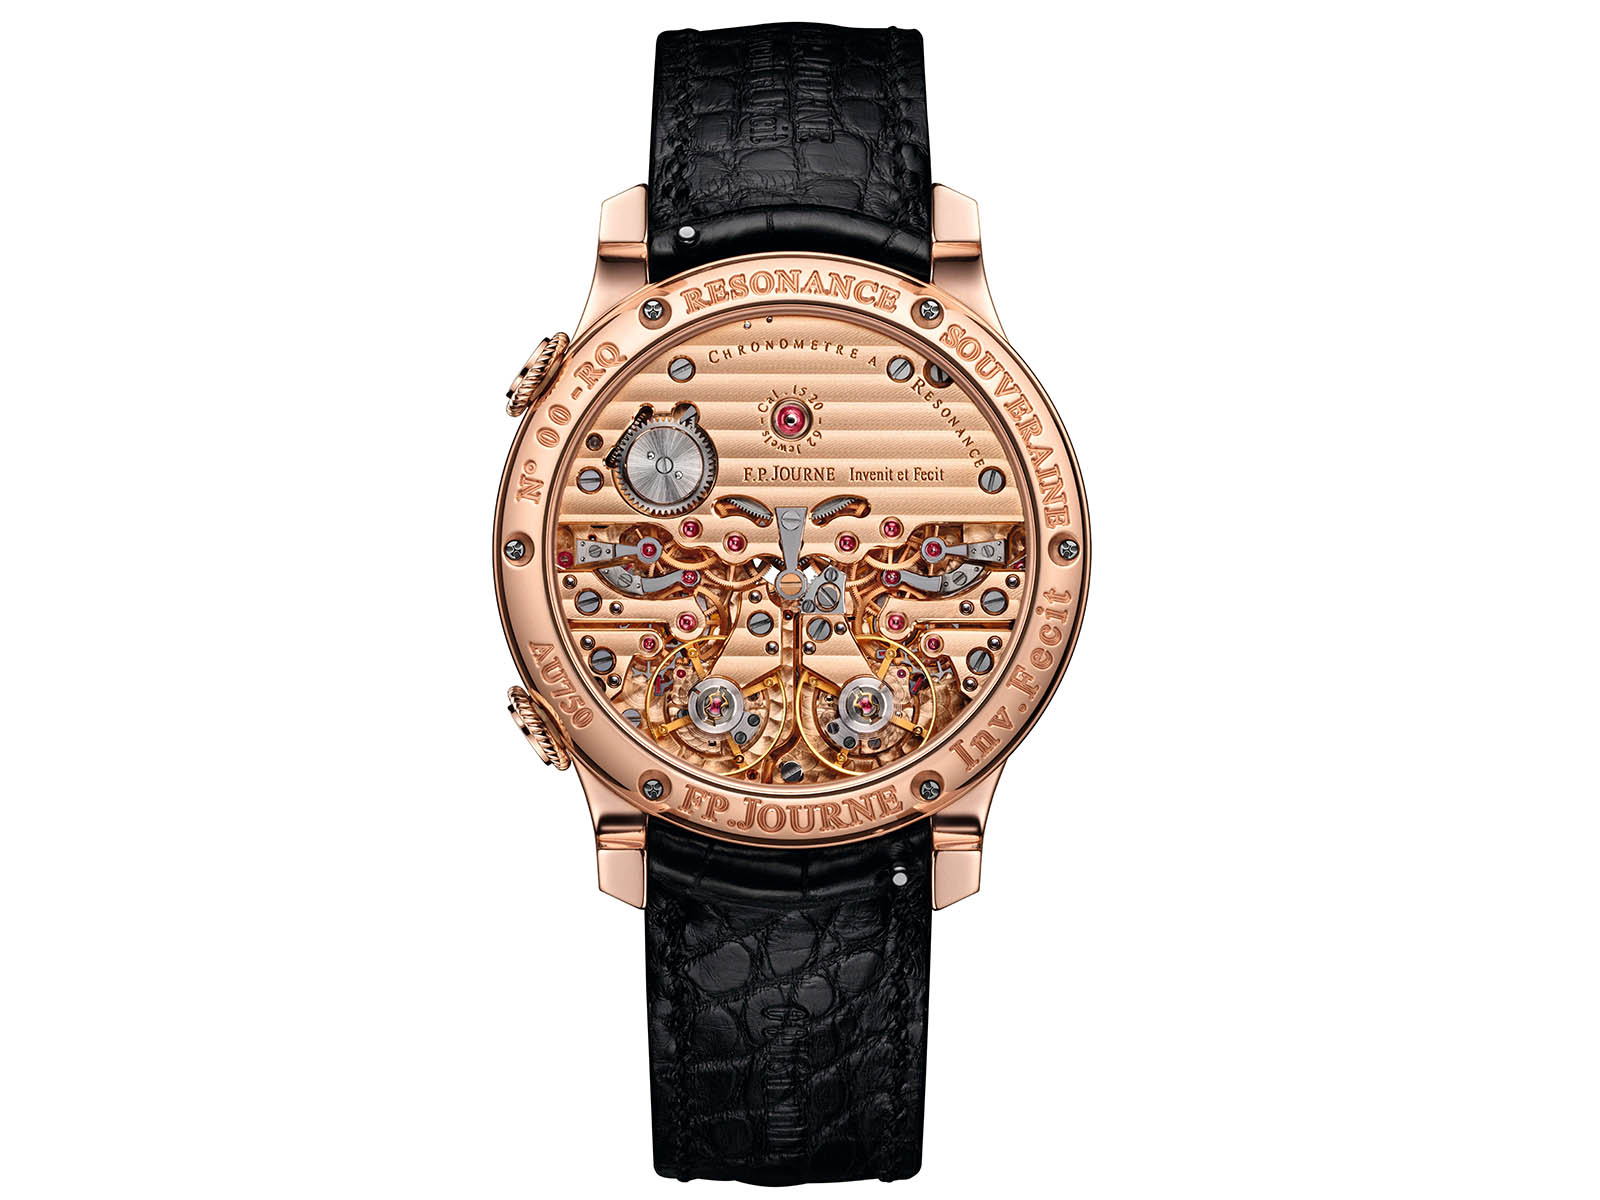 f-p-journe-chronometre-a-resonance-10.jpg